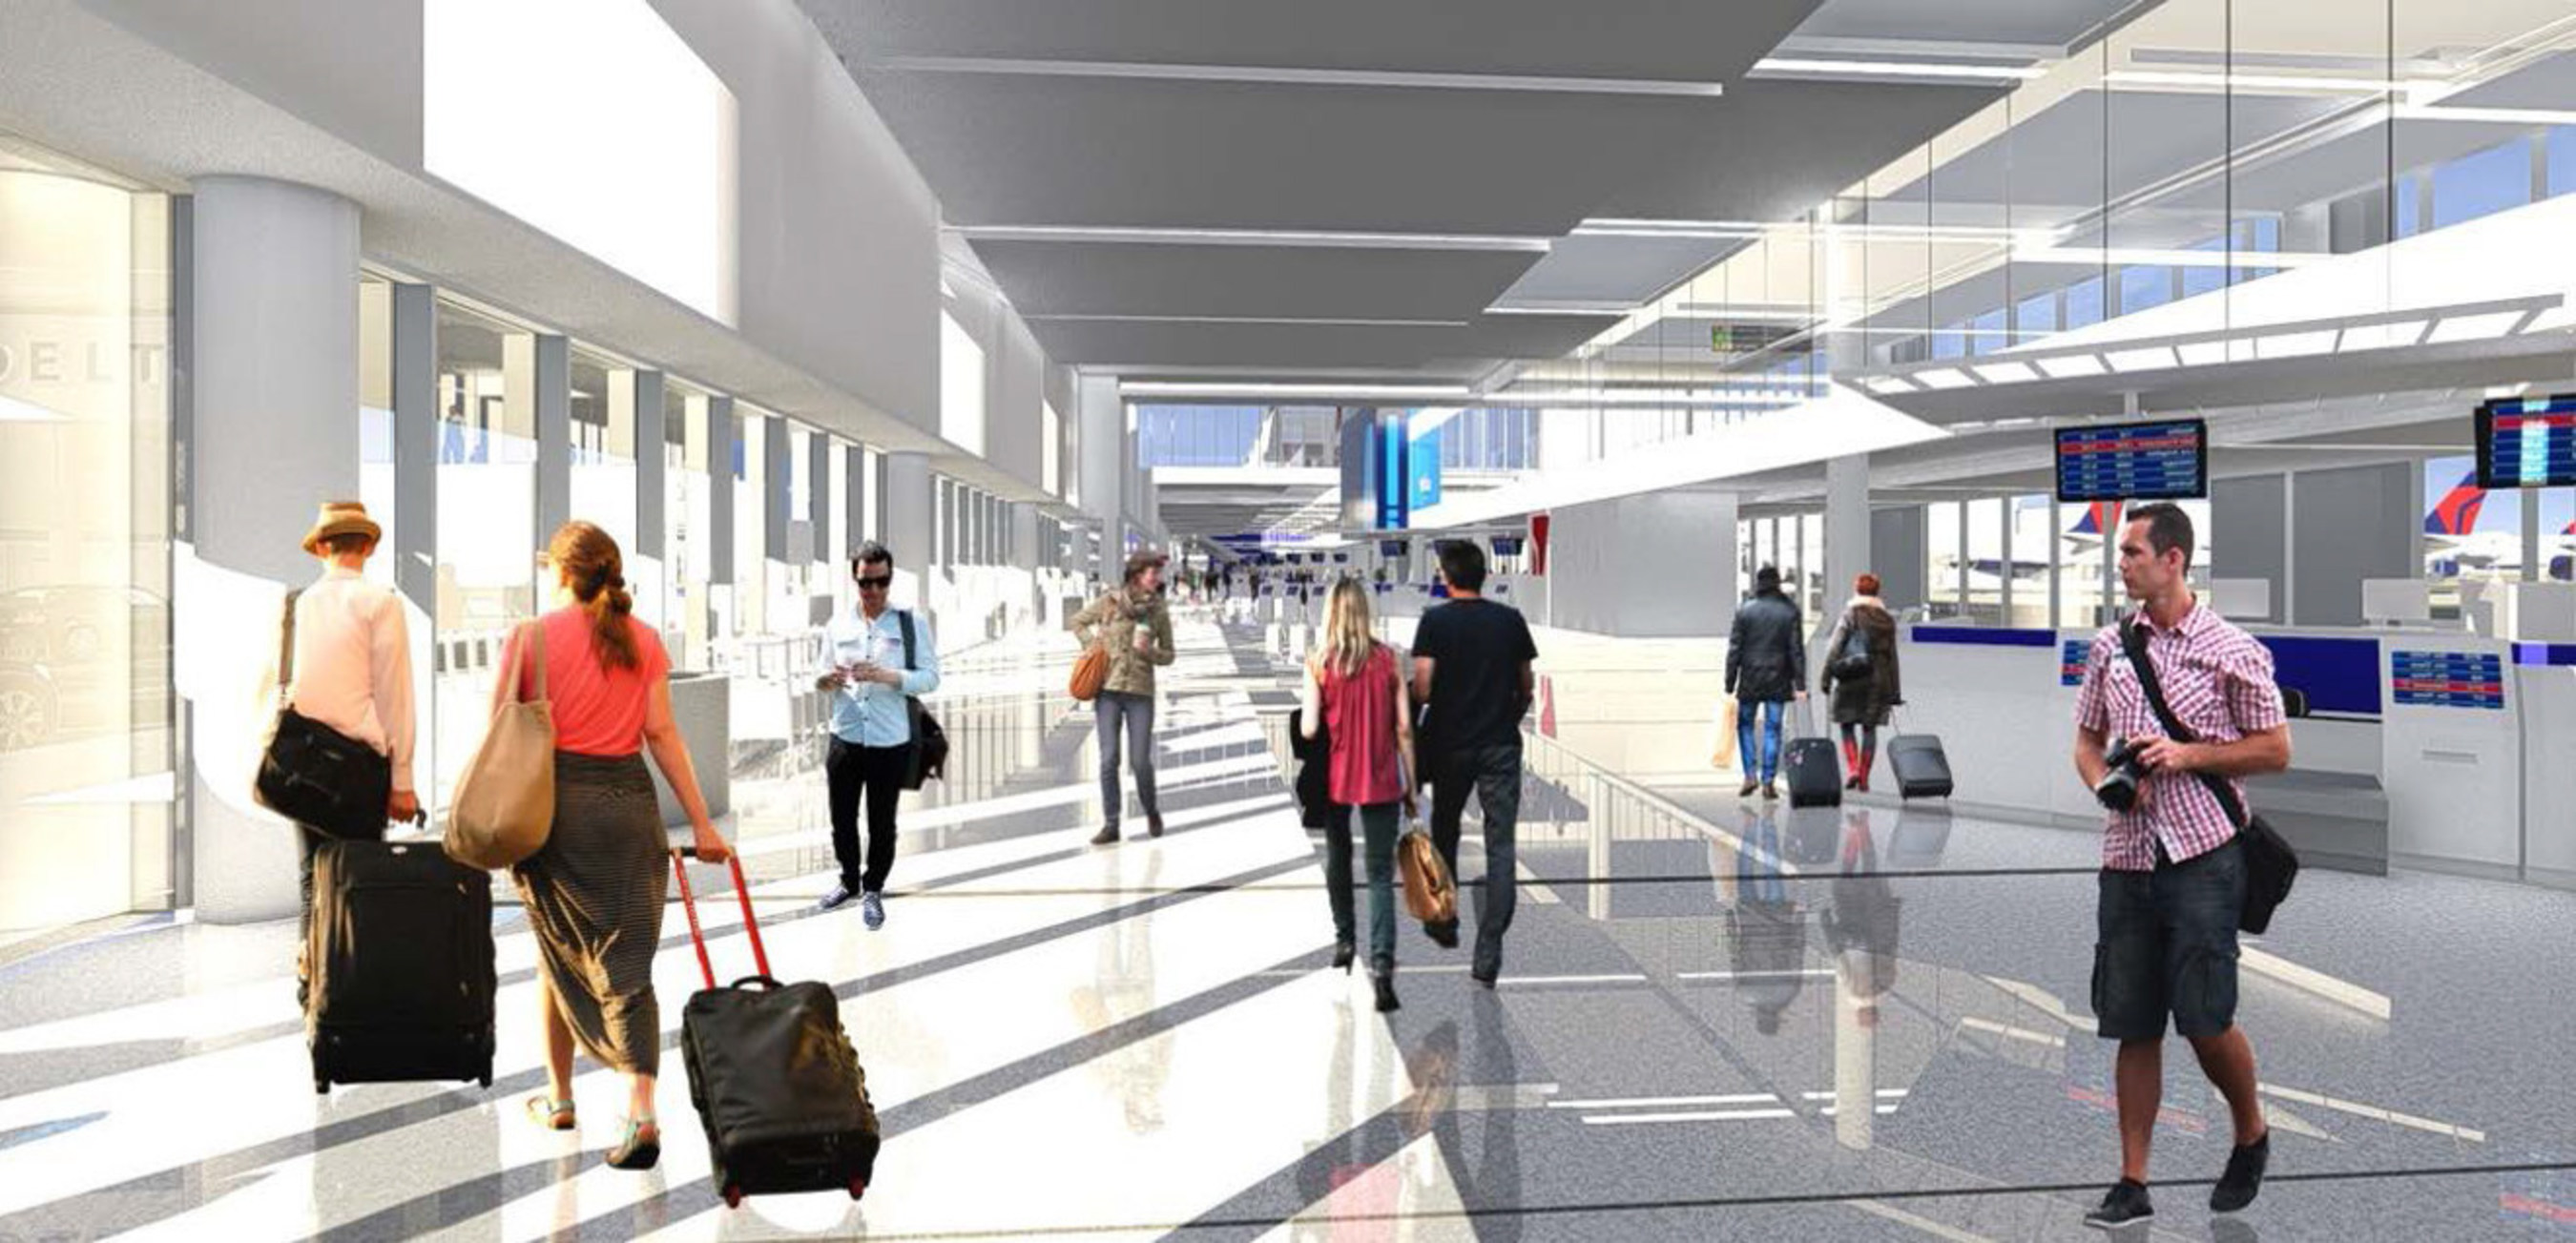 Delta to Relocate, Upgrade Operations at Los Angeles International Airport through $1.9B Plan